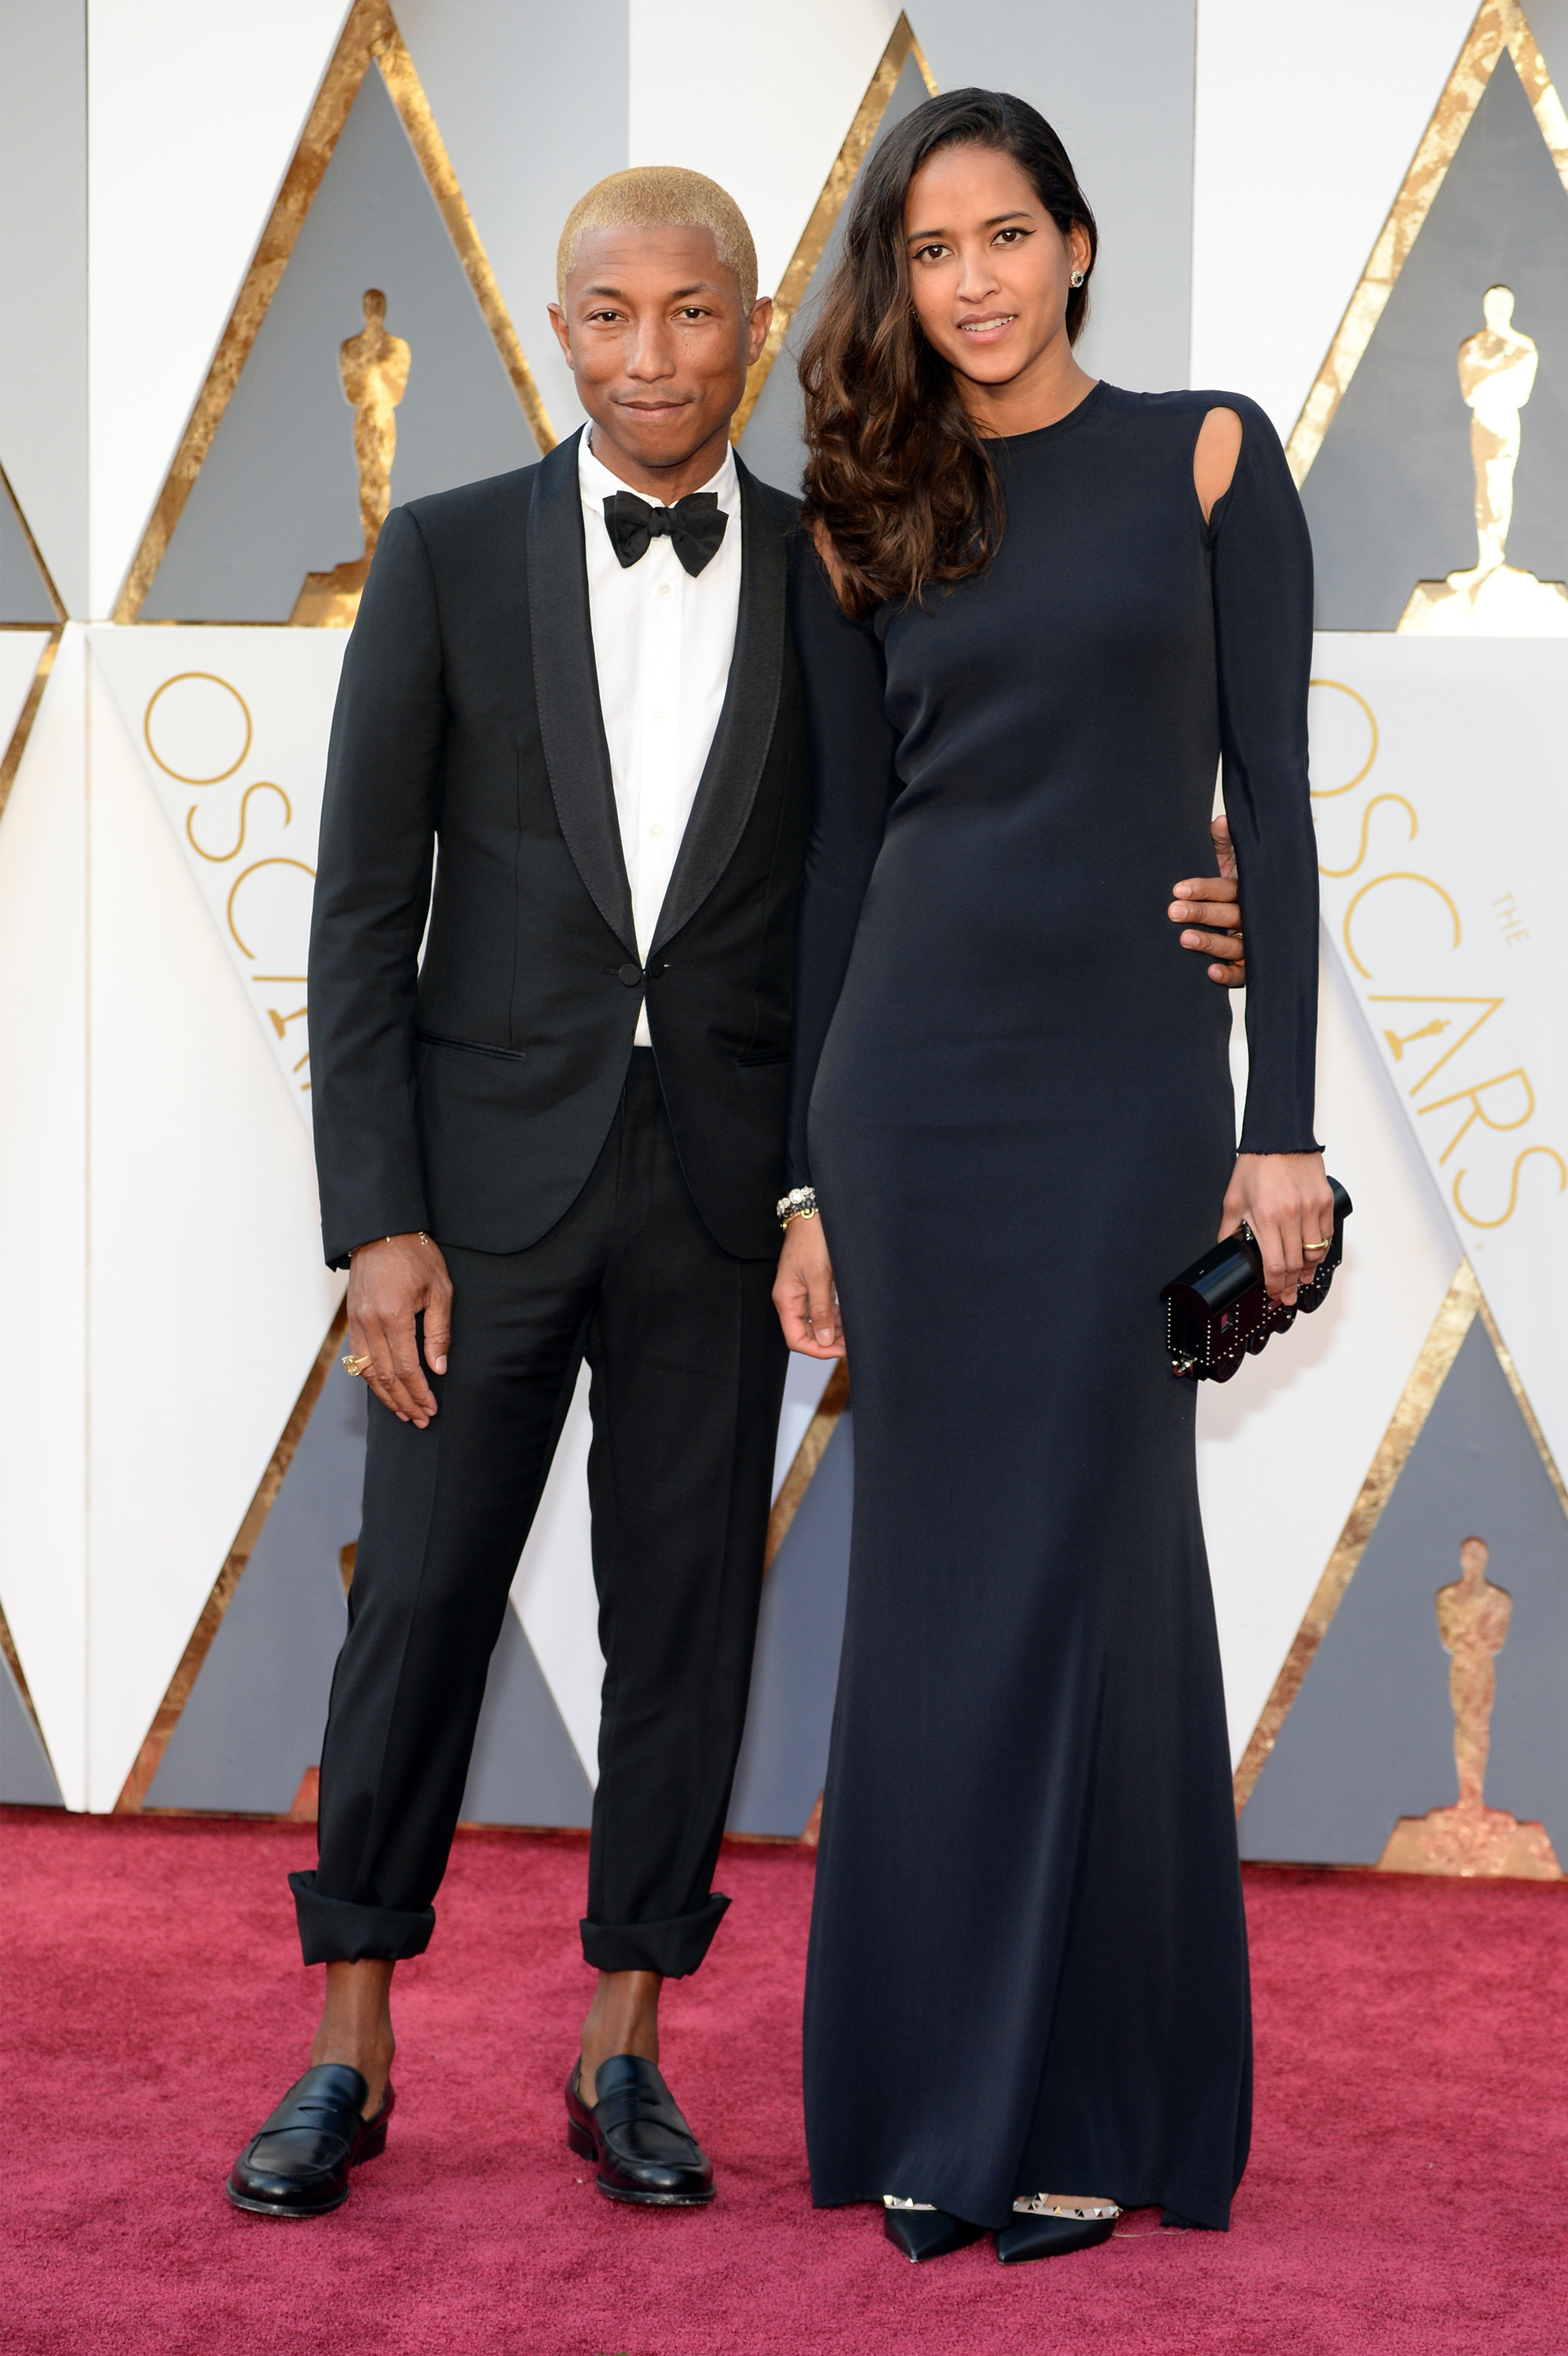 Pharrell Williams and Helen Lasichanh attend the 88th Annual Academy Awards on Feb. 28, 2016 in Hollywood, Calif.